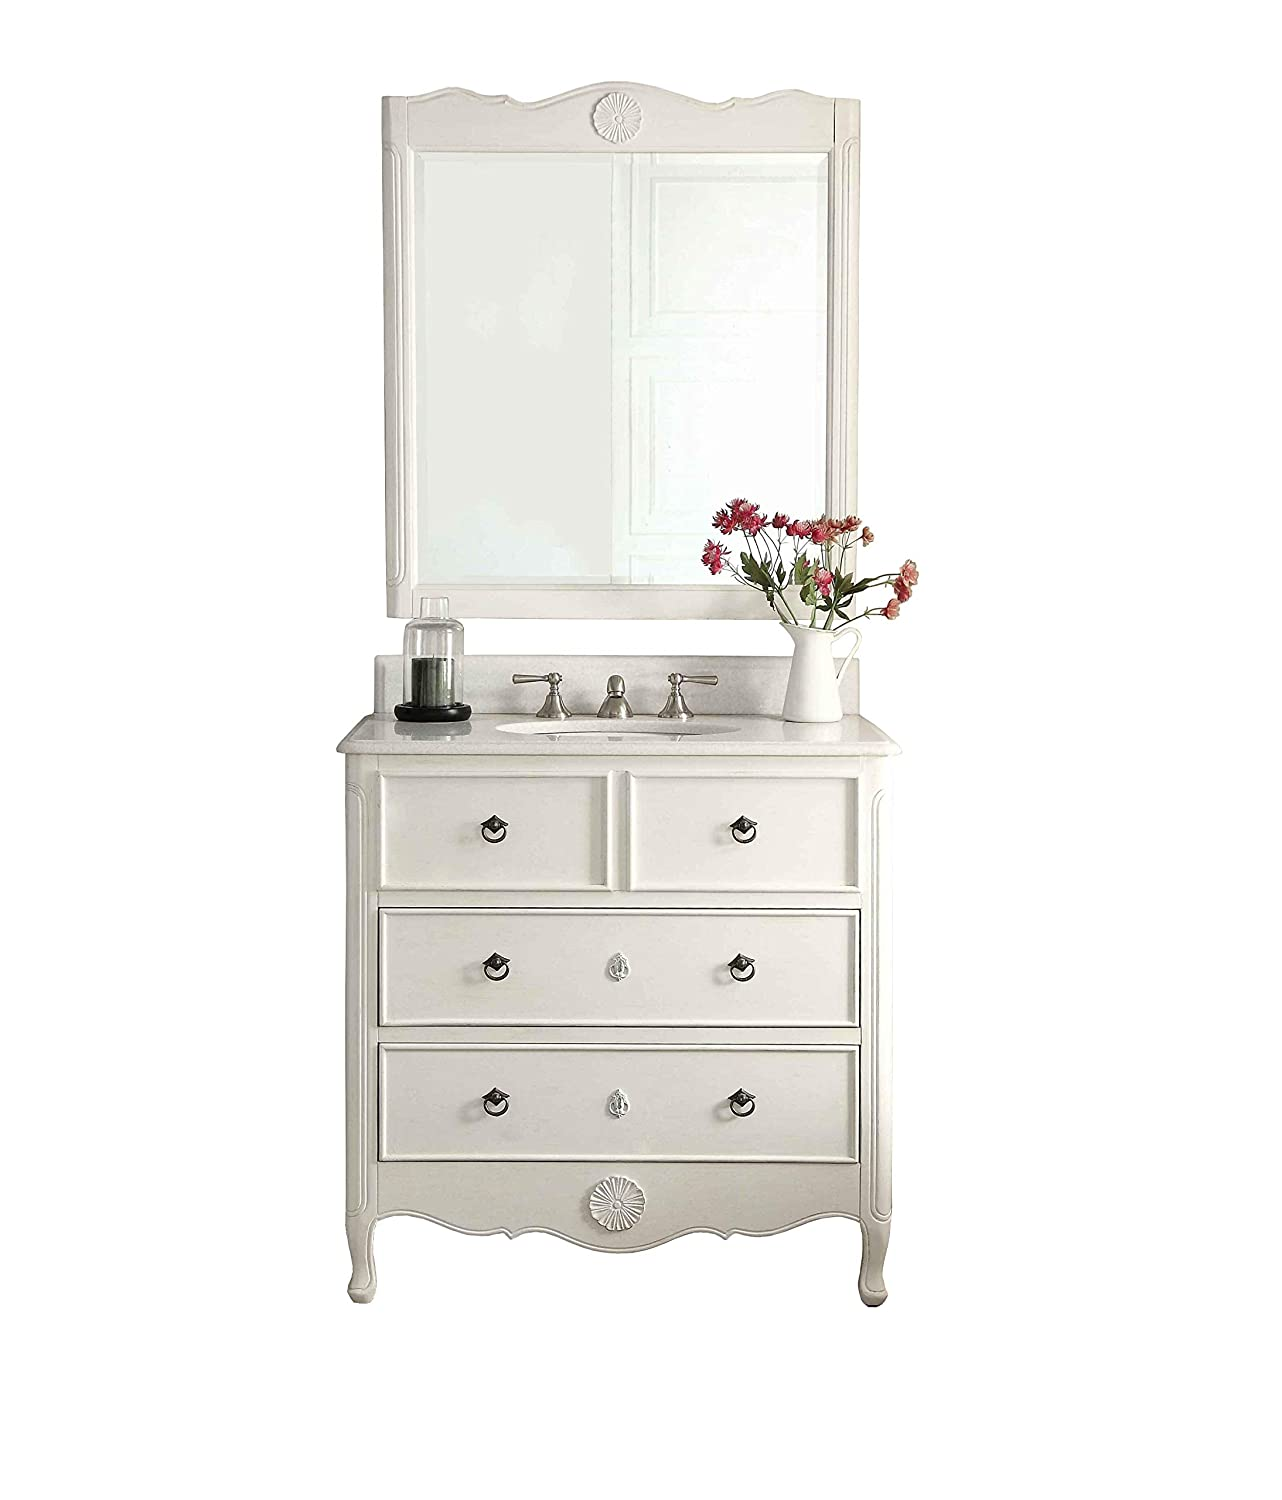 34 Cottage look Daleville Bathroom Sink vanity Mirror Set – HF-081AW-MIR Antique White